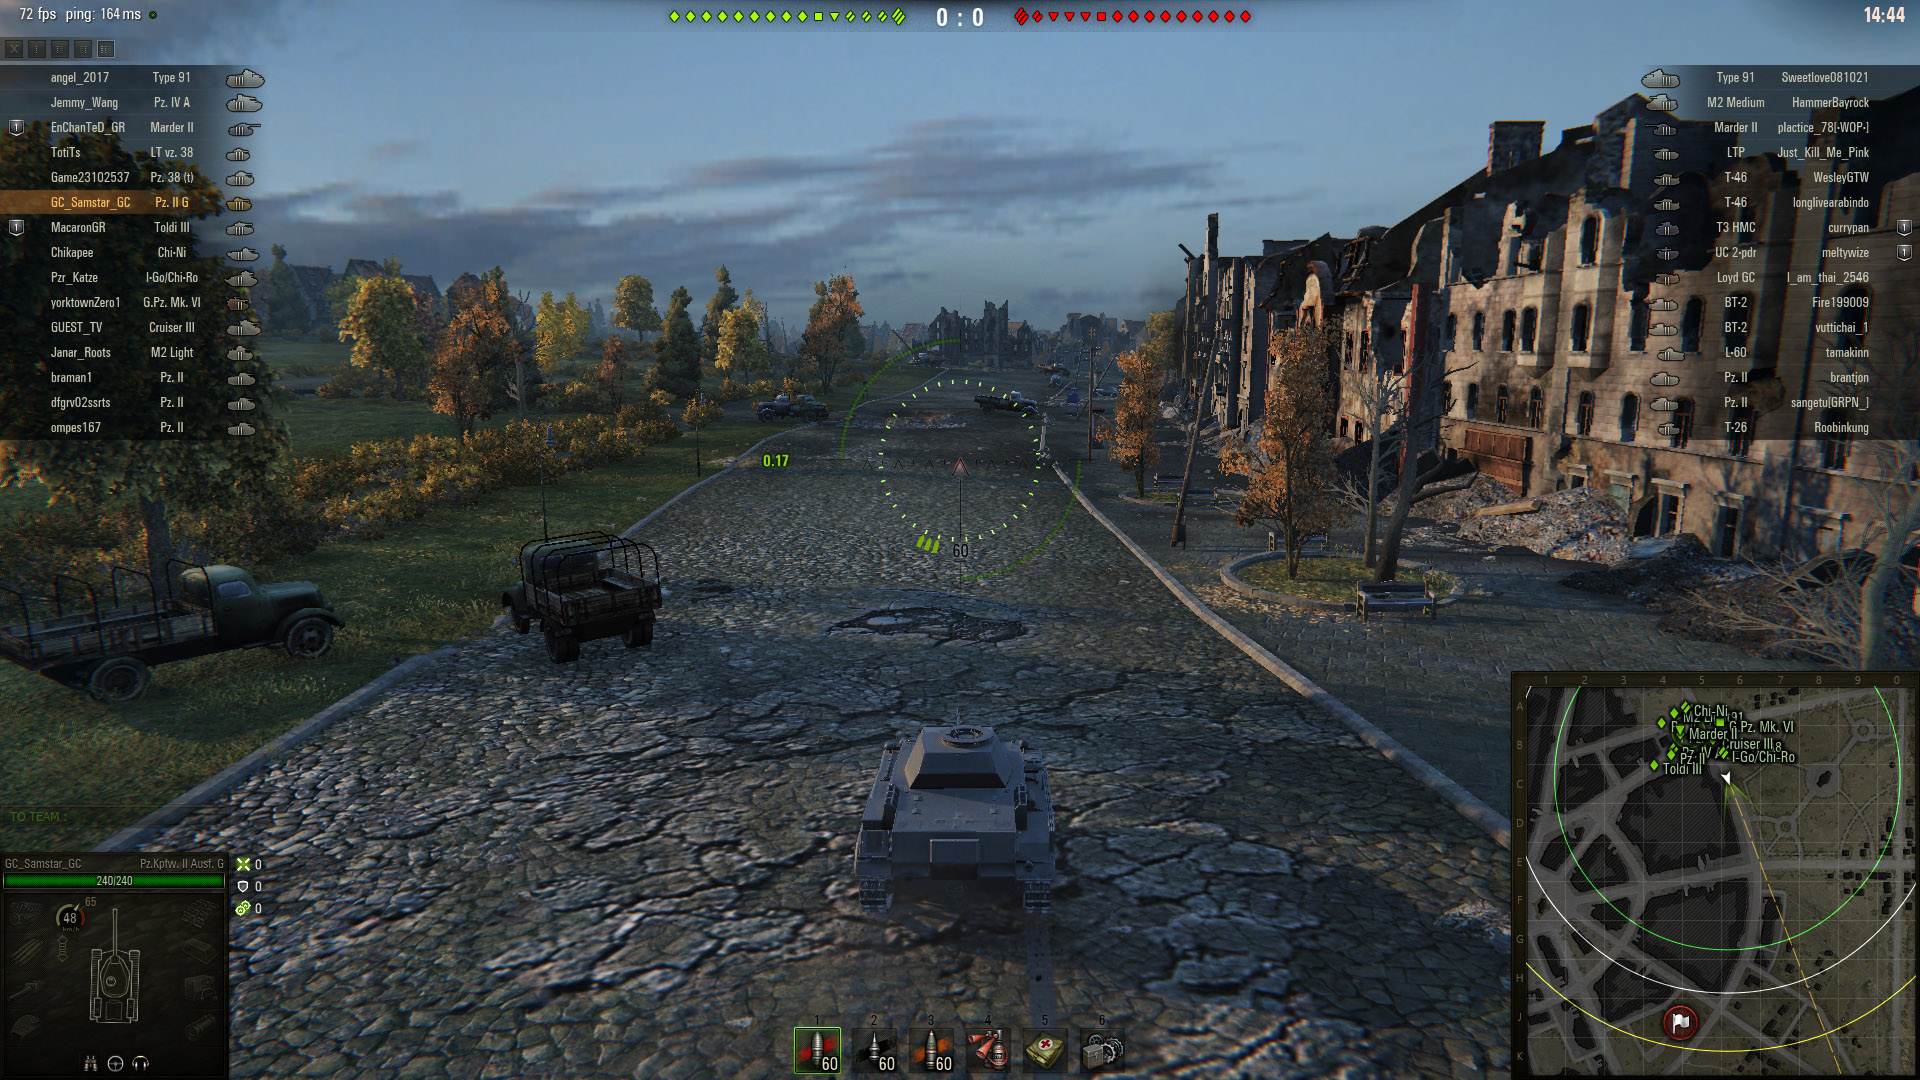 The Panzer Division, unaware of the KV-1s lying in ambush, made their way, single-file, along the highway.